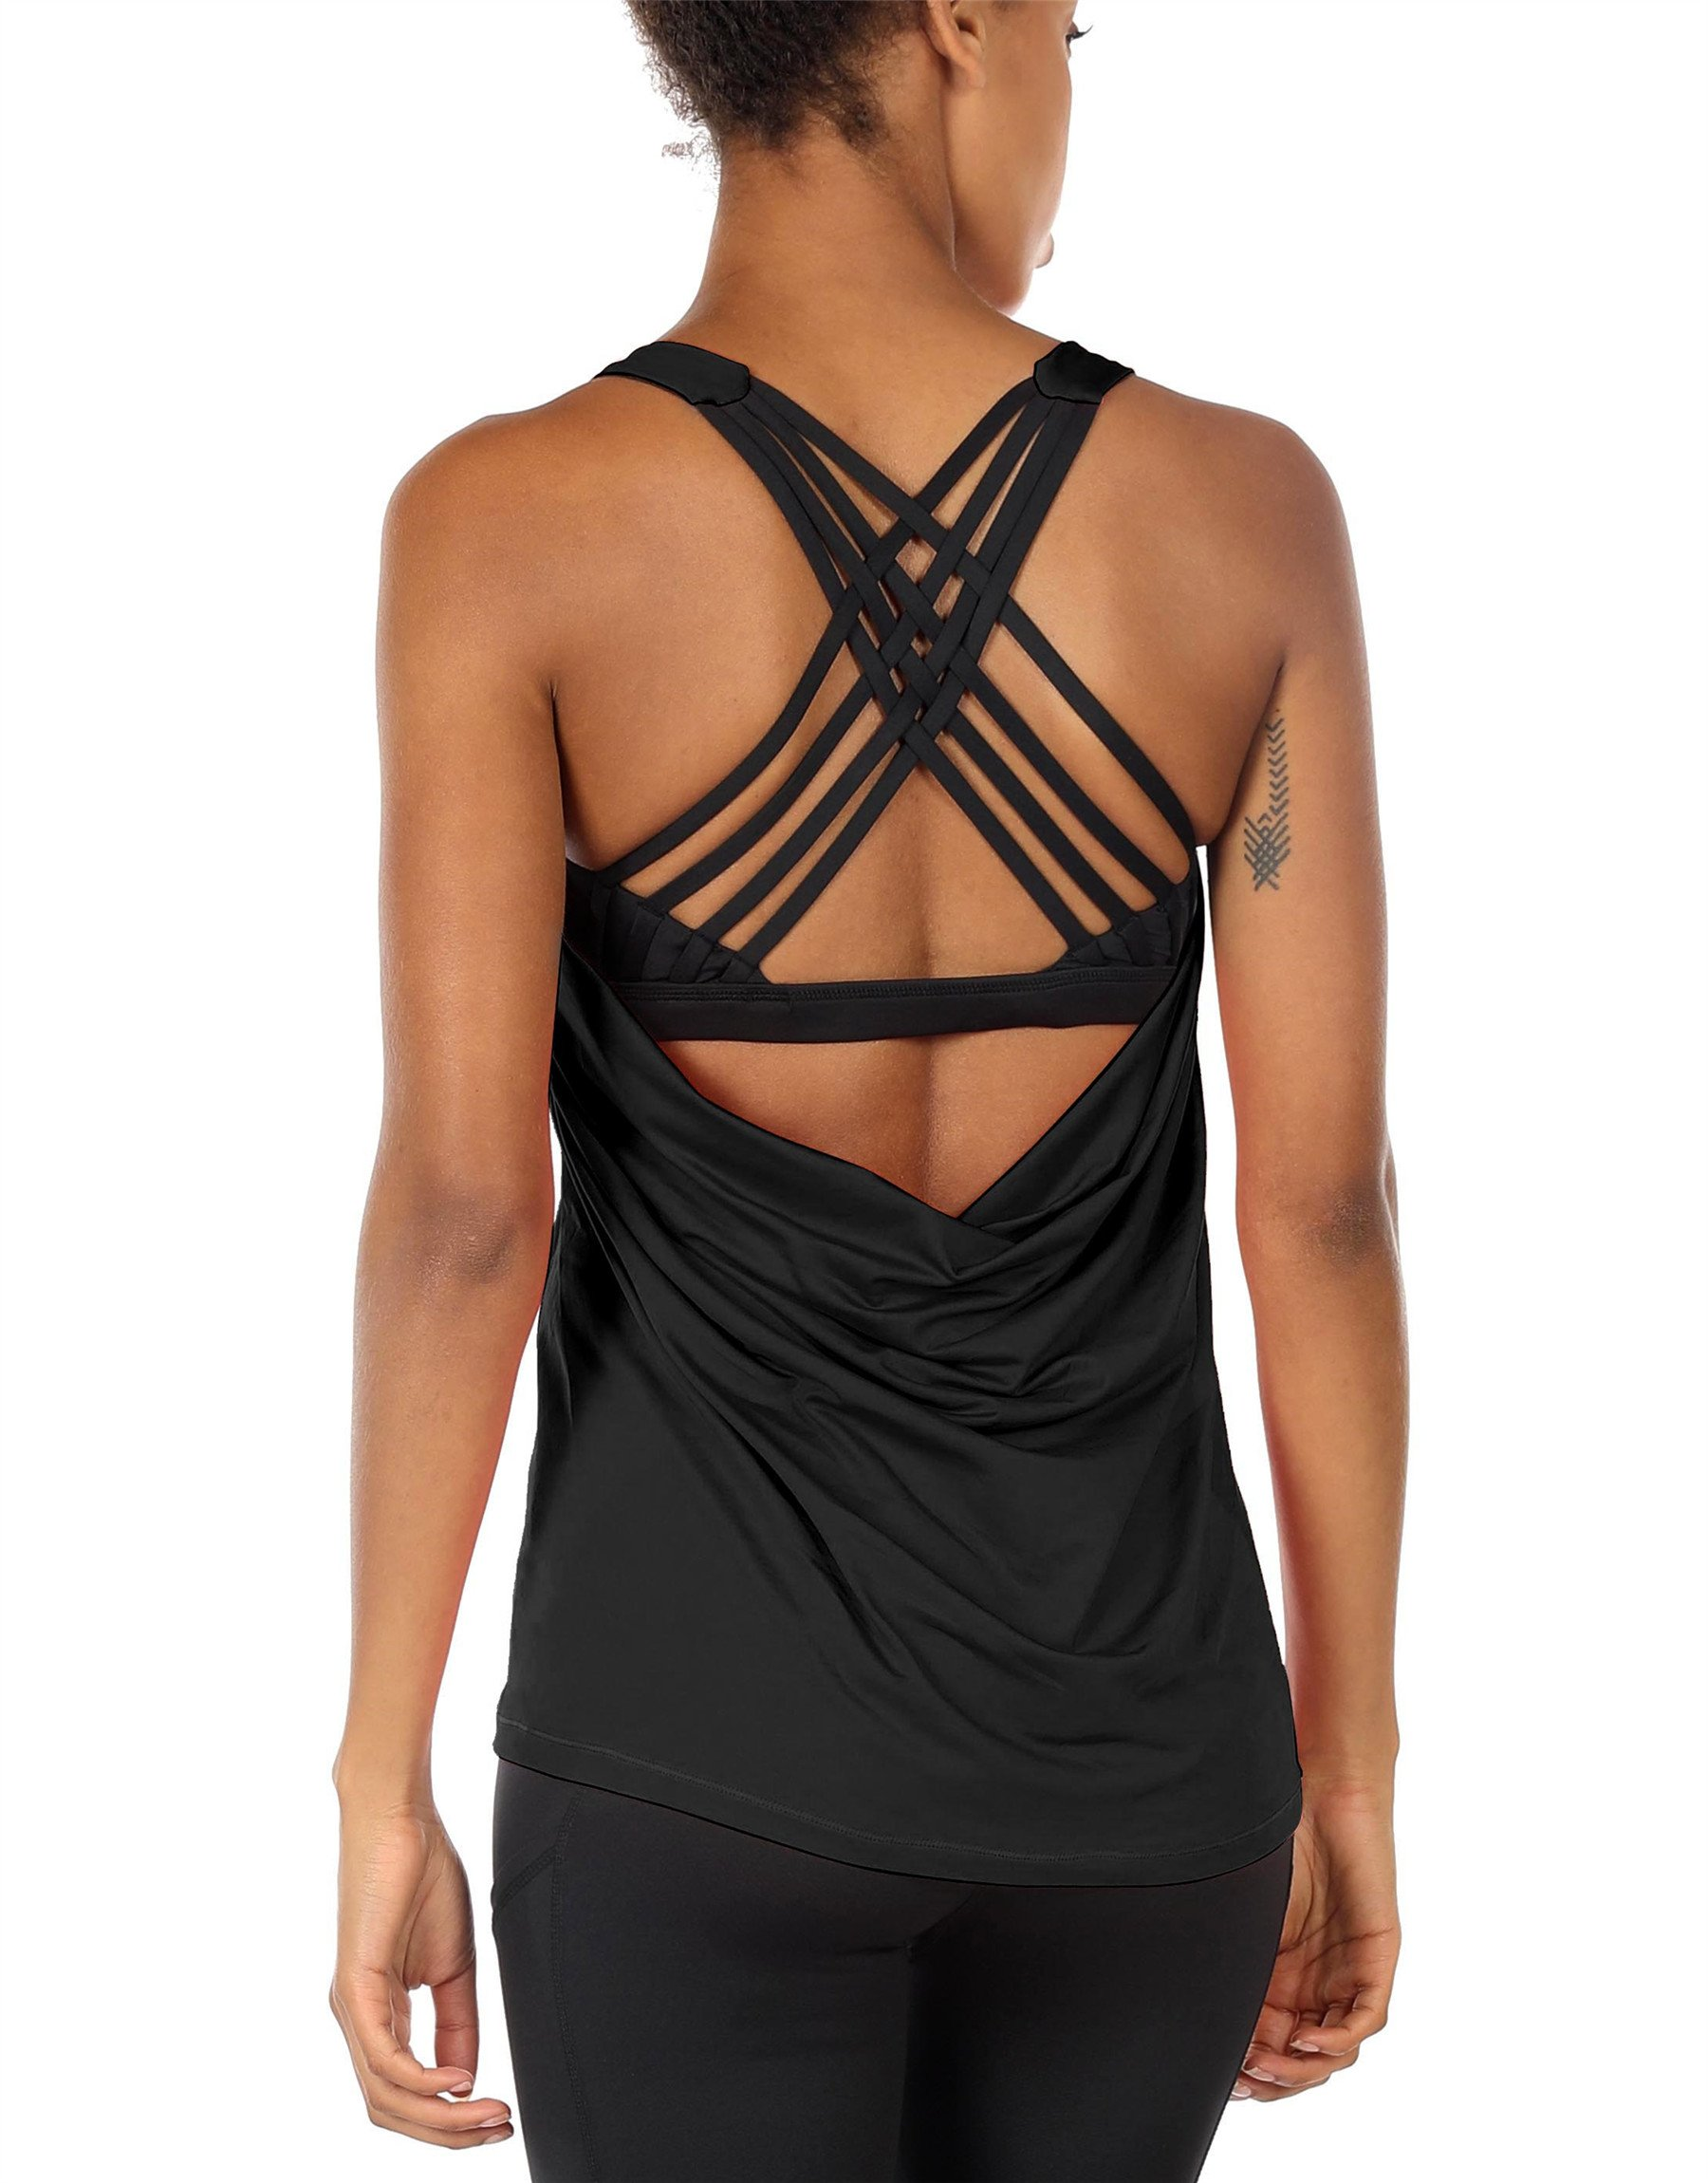 icyzone Yoga Tops Workouts Clothes Activewear Built in Bra Tank Tops for Women (XL, Black)